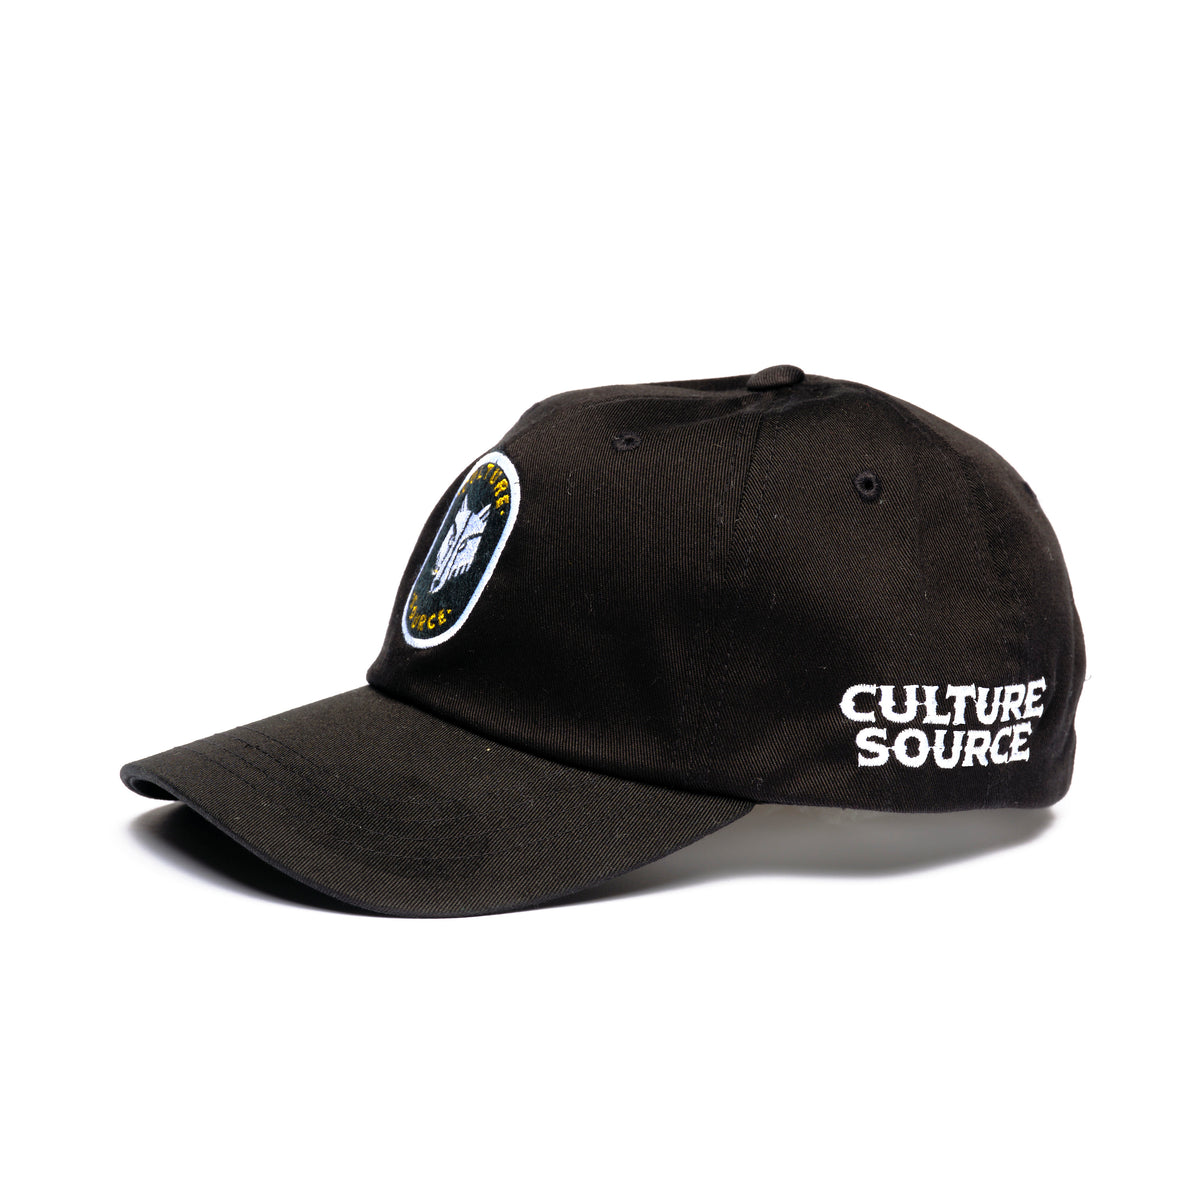 CS Circle Logo Dad Hat - Culture source